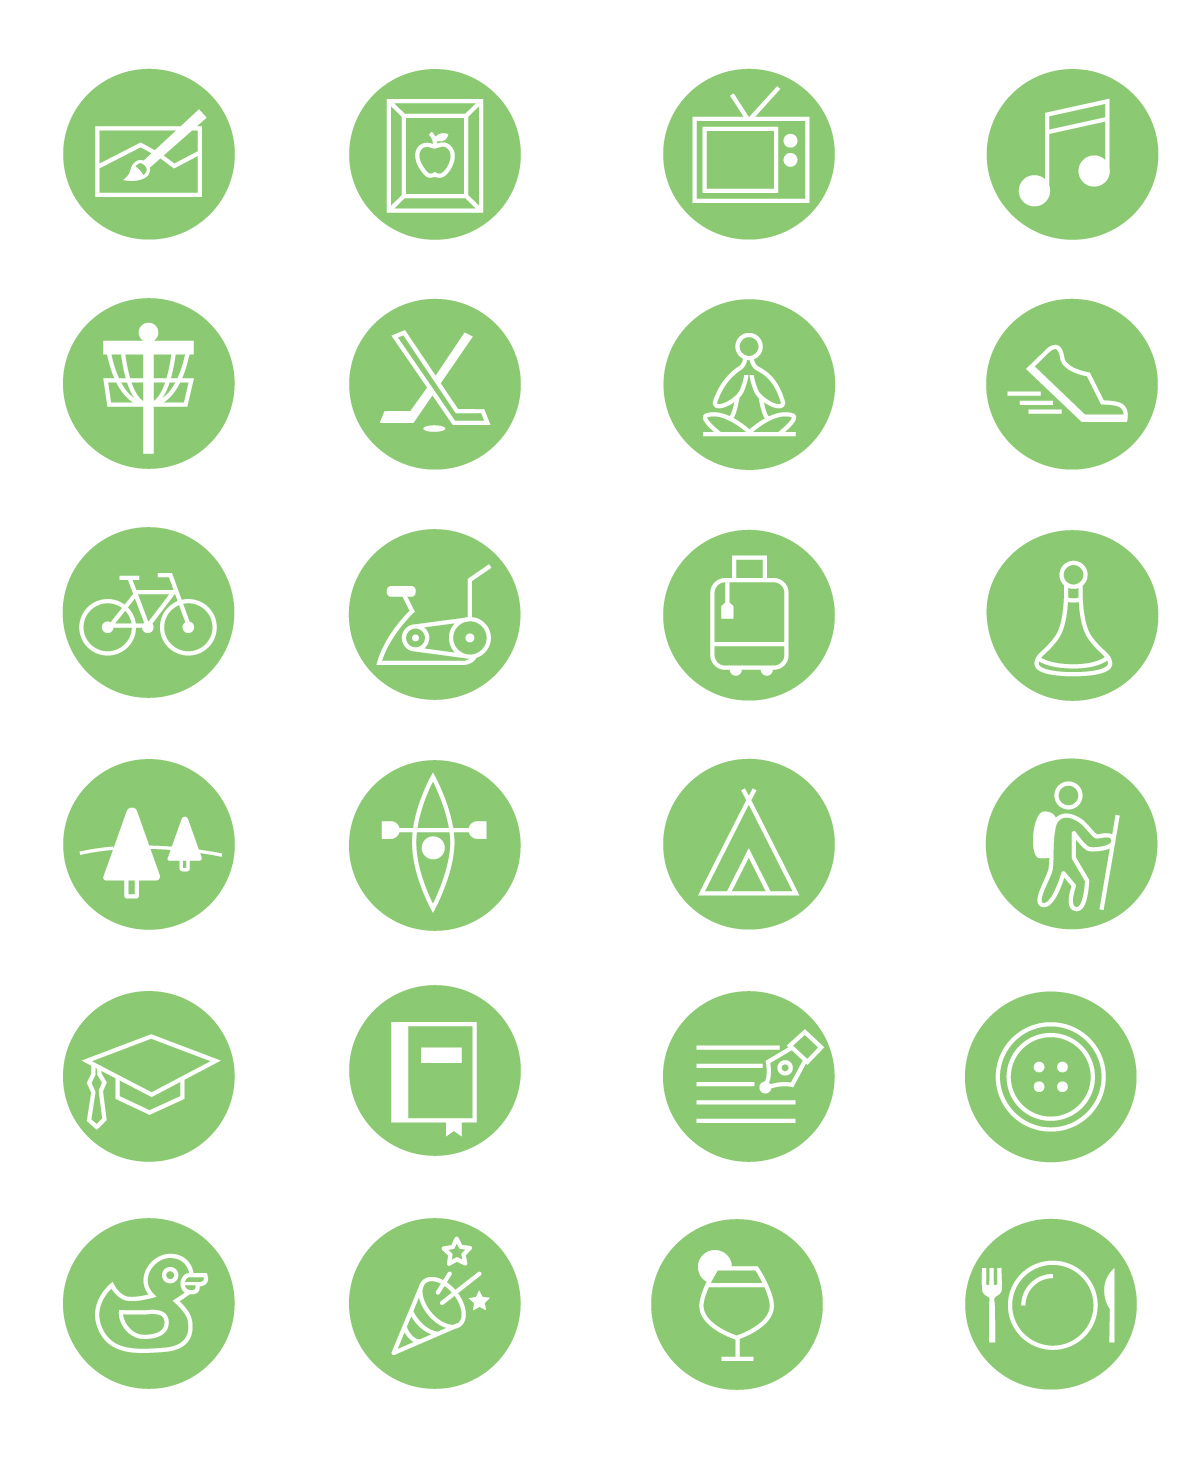 hobby icons on behance from disc golfing to entertaining these icons were done for team brightly to represent team members hobbies and personal interests